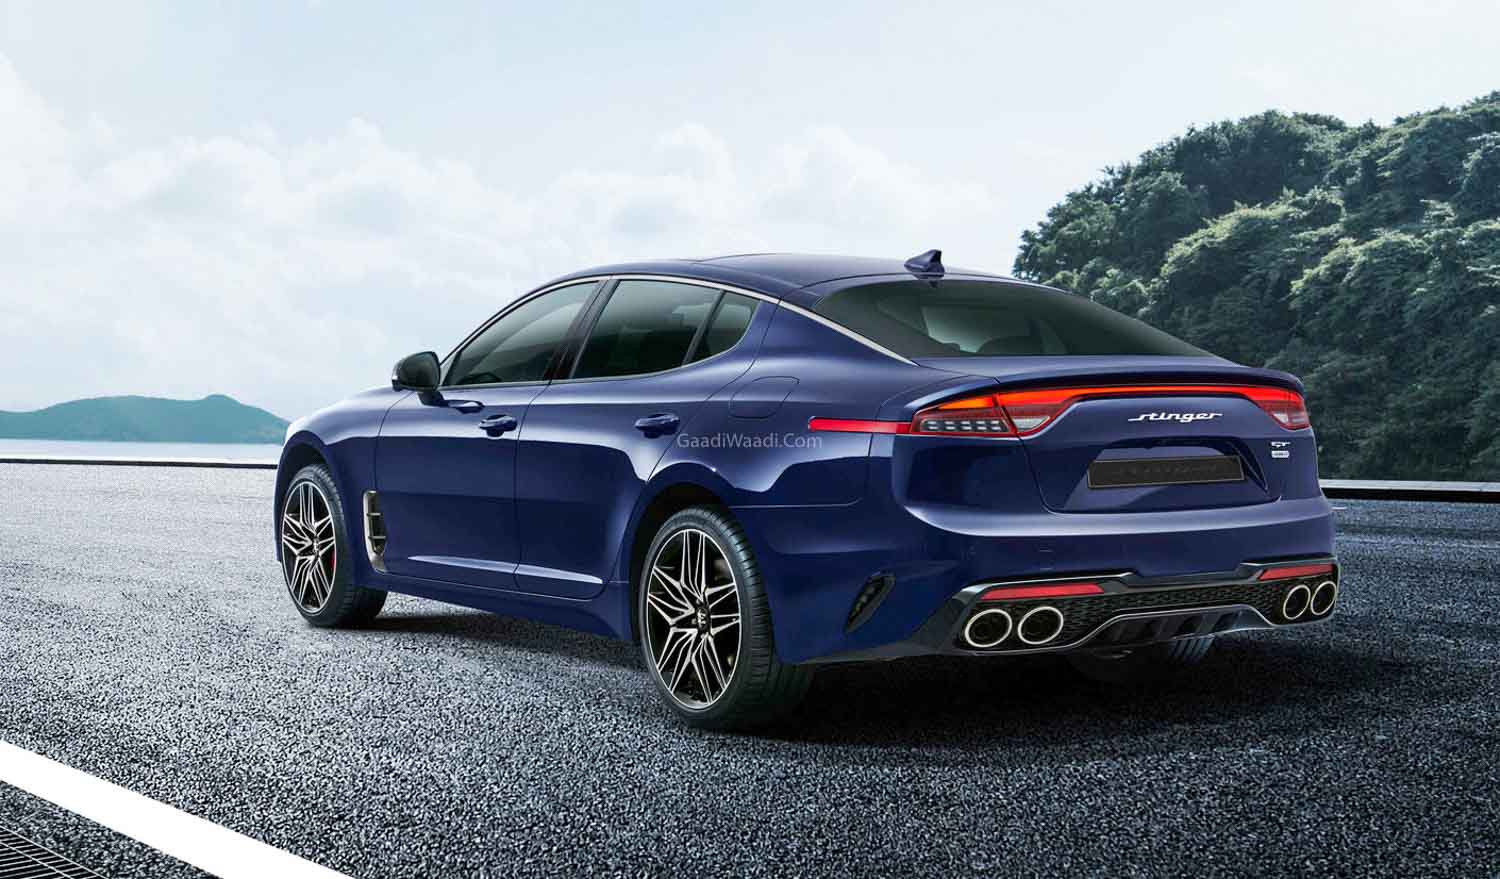 2021 Kia Stinger Revealed With More Tech & Updated Powertrains